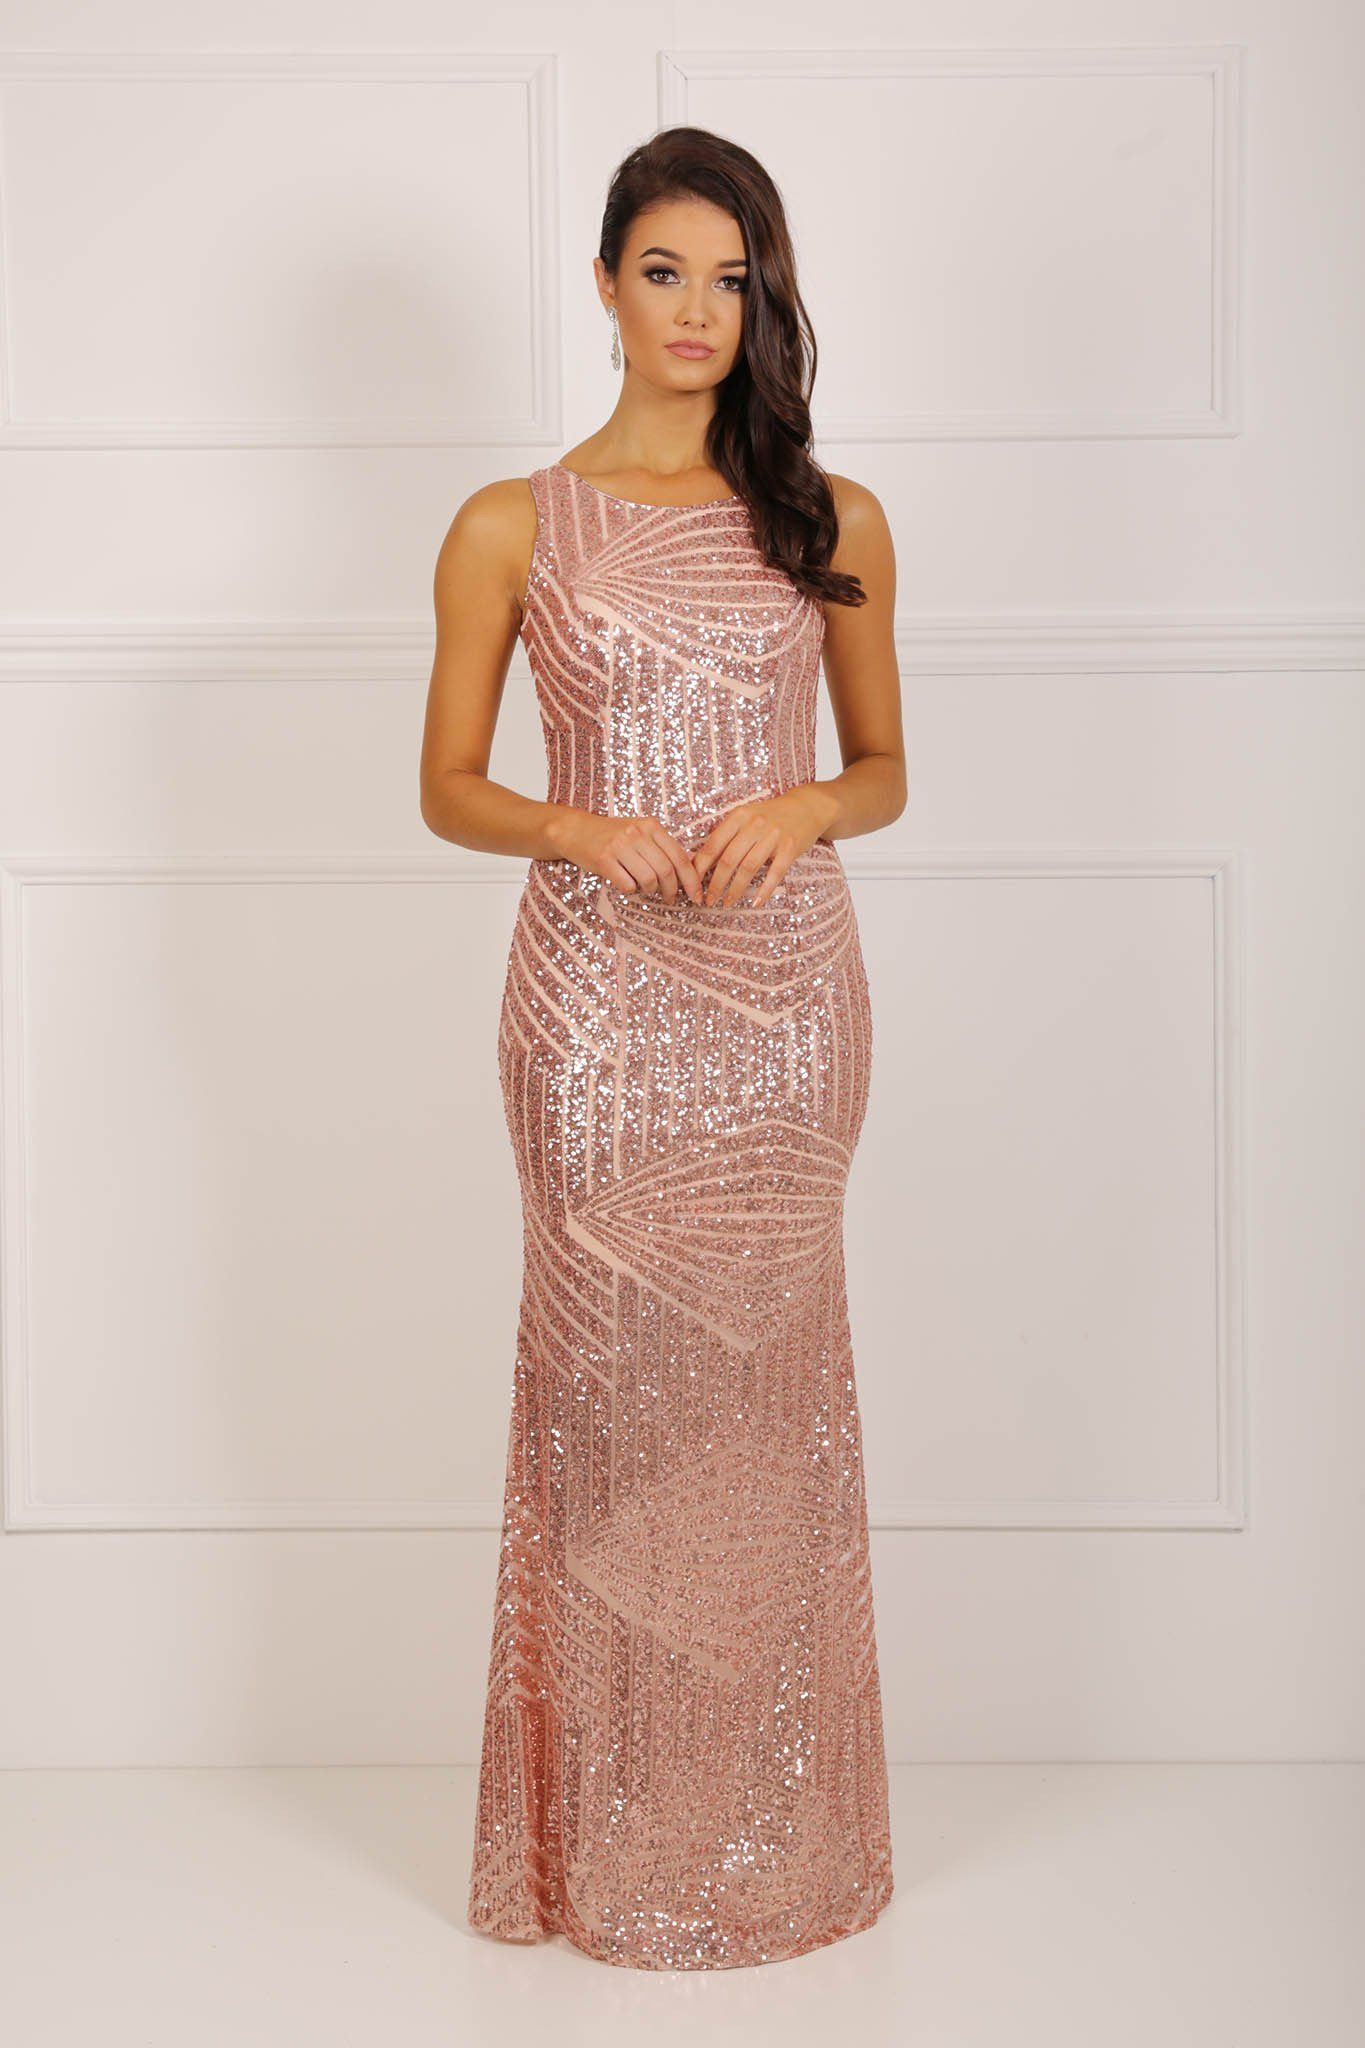 acef853def All about Rose Gold Rosa Sequin Dress Curvaceous Boutique ...